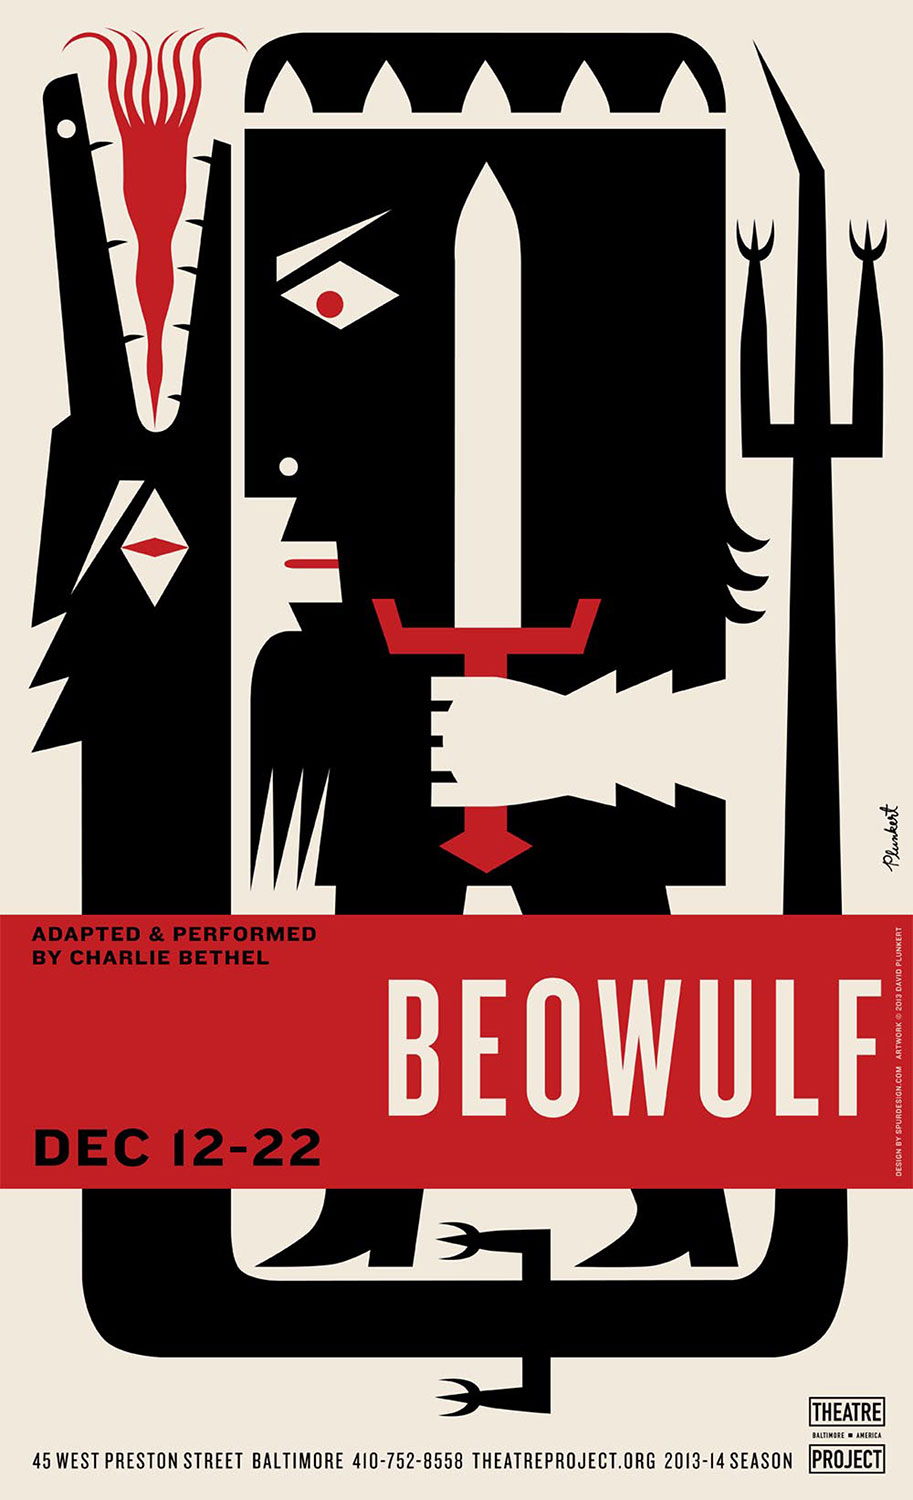 David Plunkert / Beowulf / Theater Project